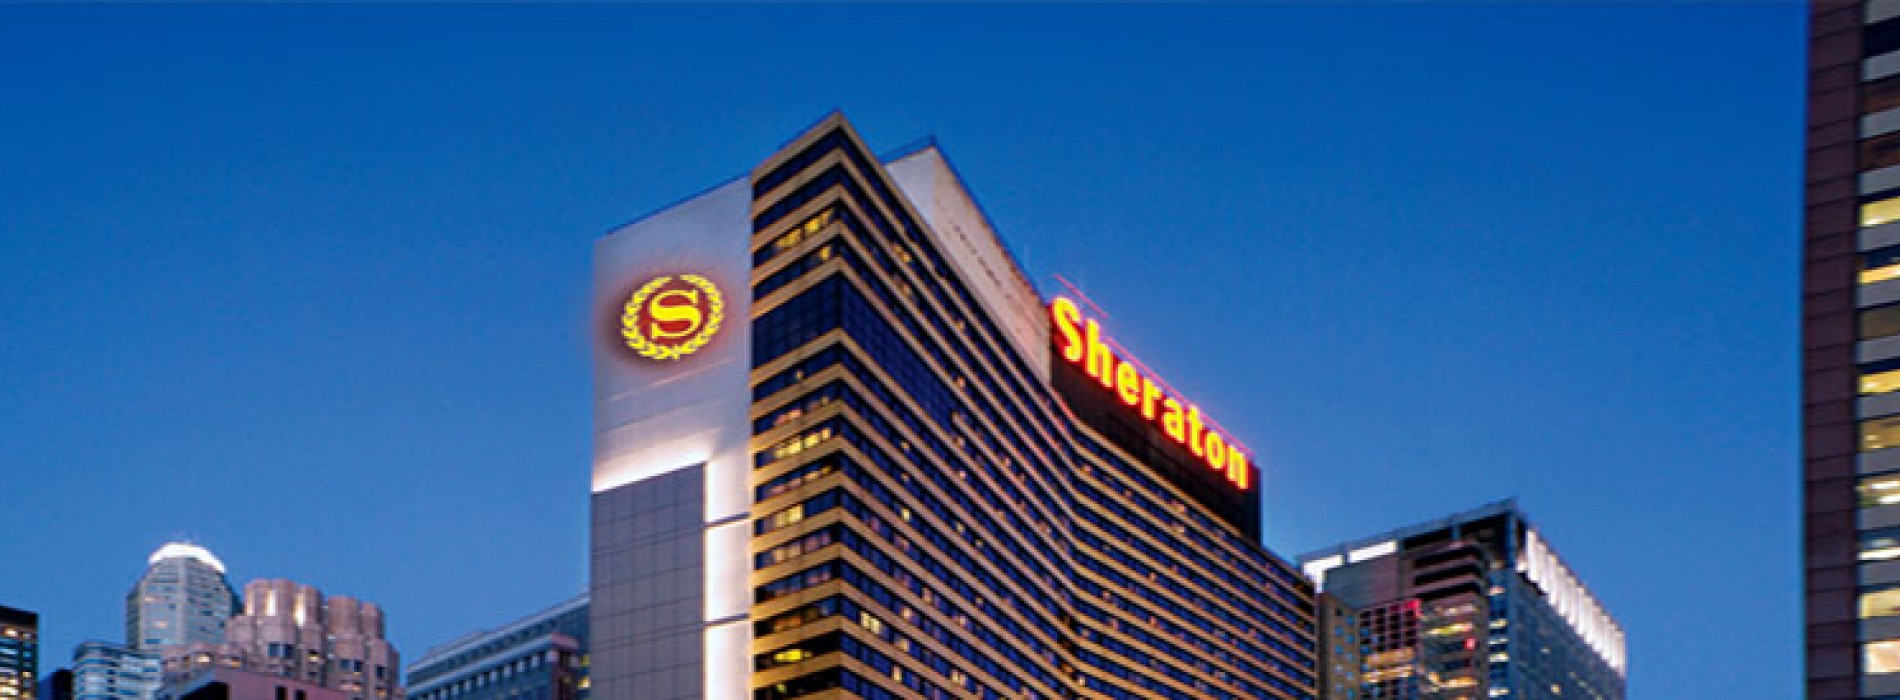 · Marriott has announced major changes to its loyalty program, Marriott Rewards, that will merge the program with Ritz-Carlton and Starwood's.